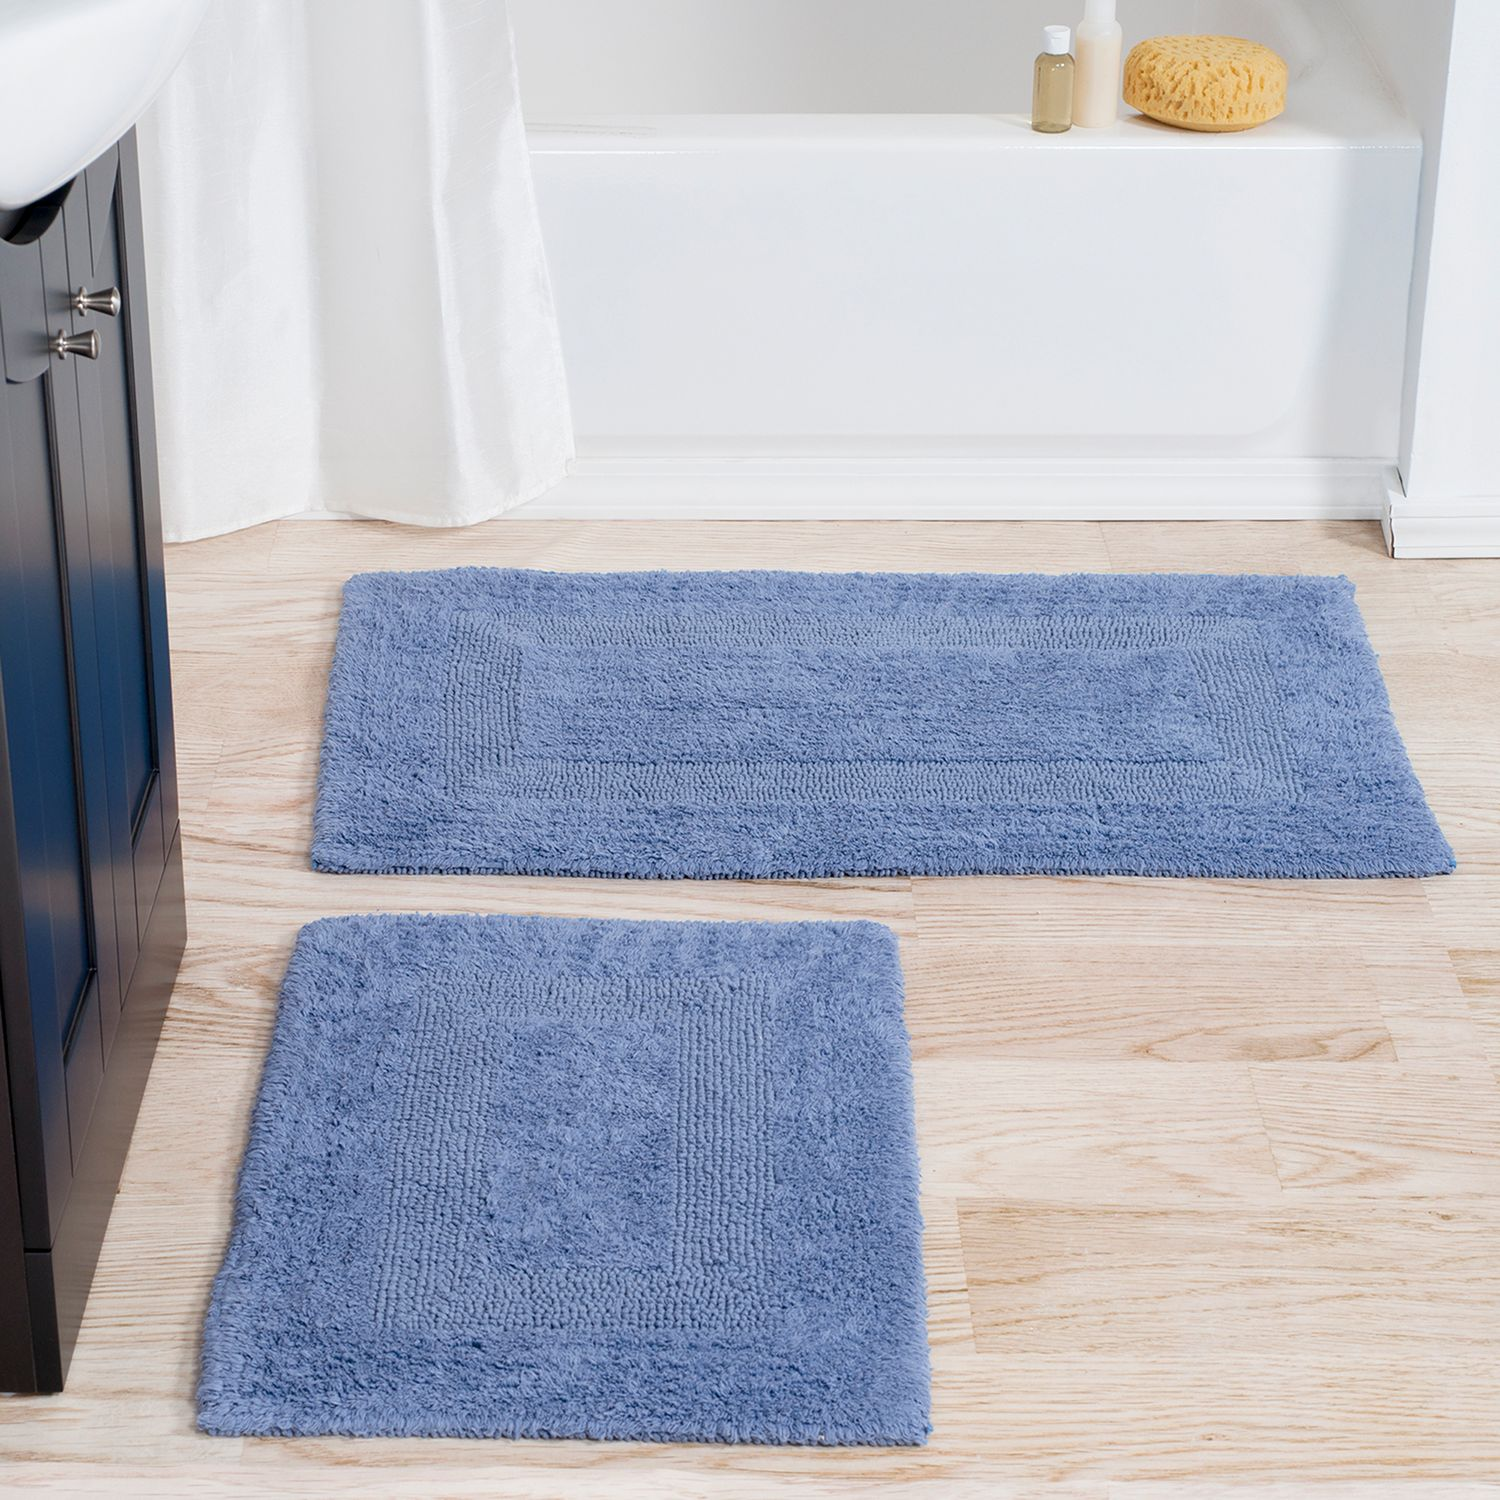 portsmouth home 2piece reversible bath rug set